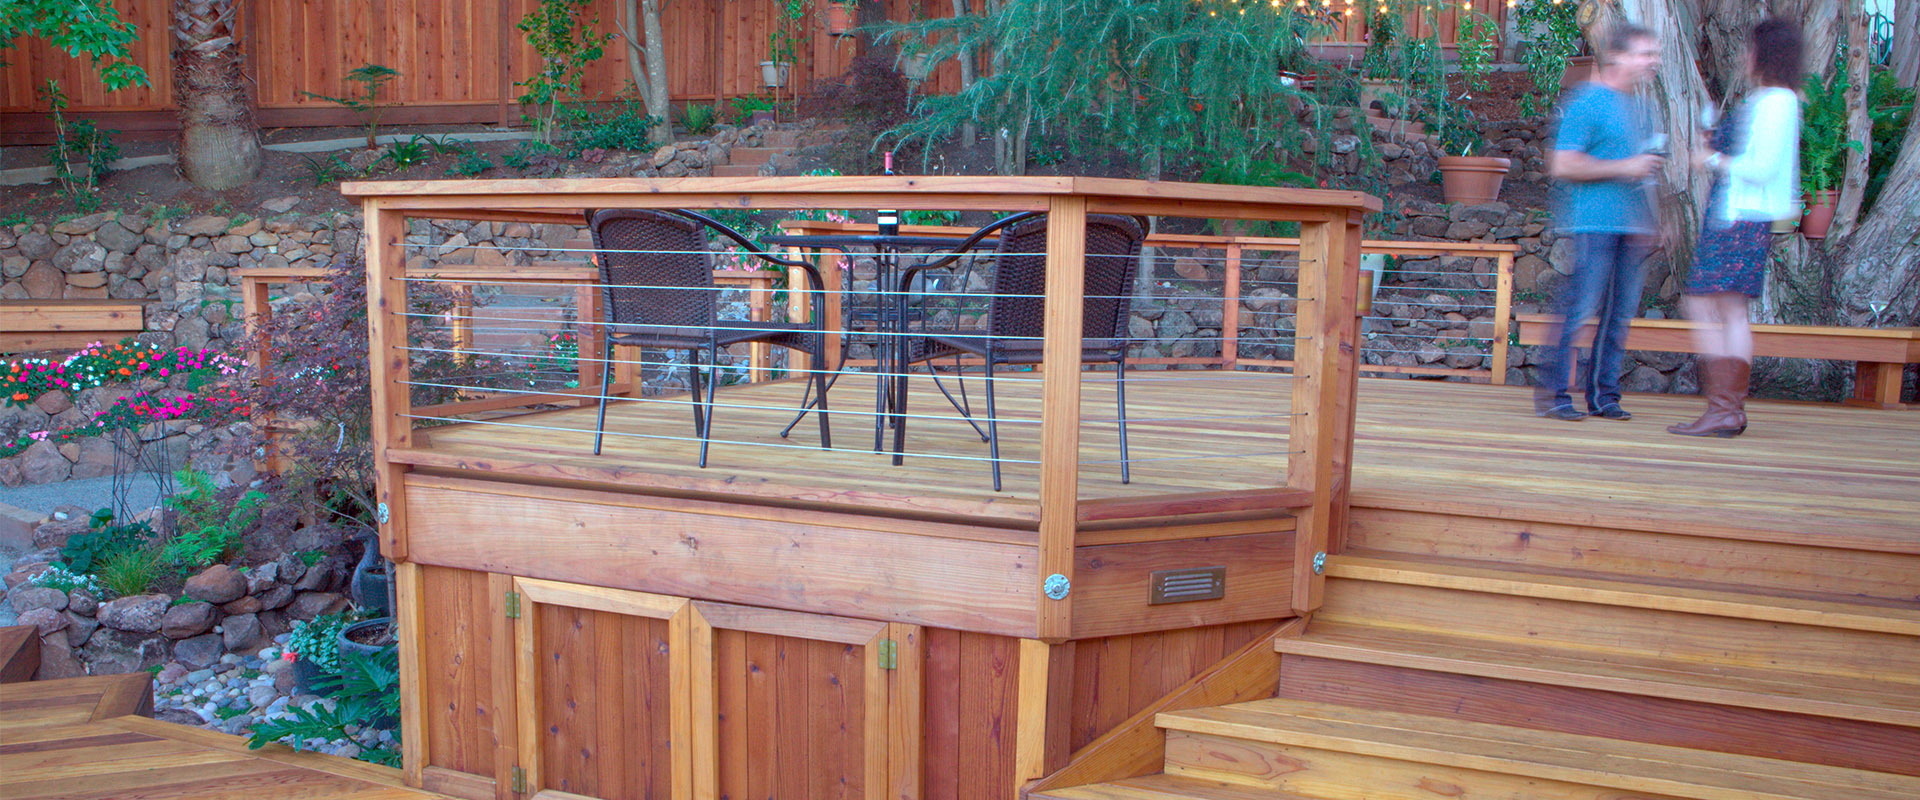 Humboldt Redwood Clear Grade Redwood Deck